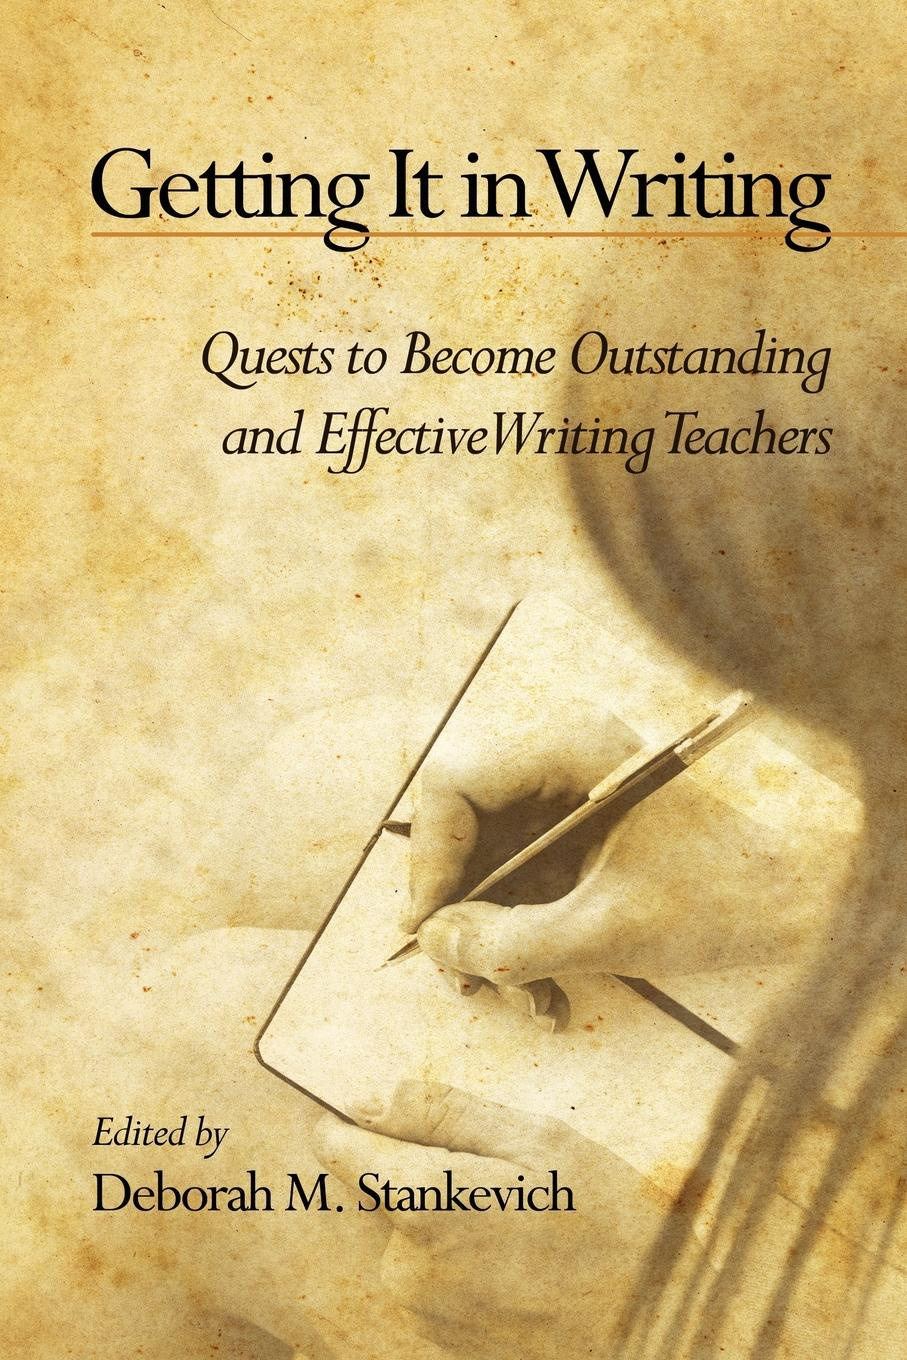 Getting It in Writing. The Quest to Become Outstanding and Effective Teachers of Writing the writing system